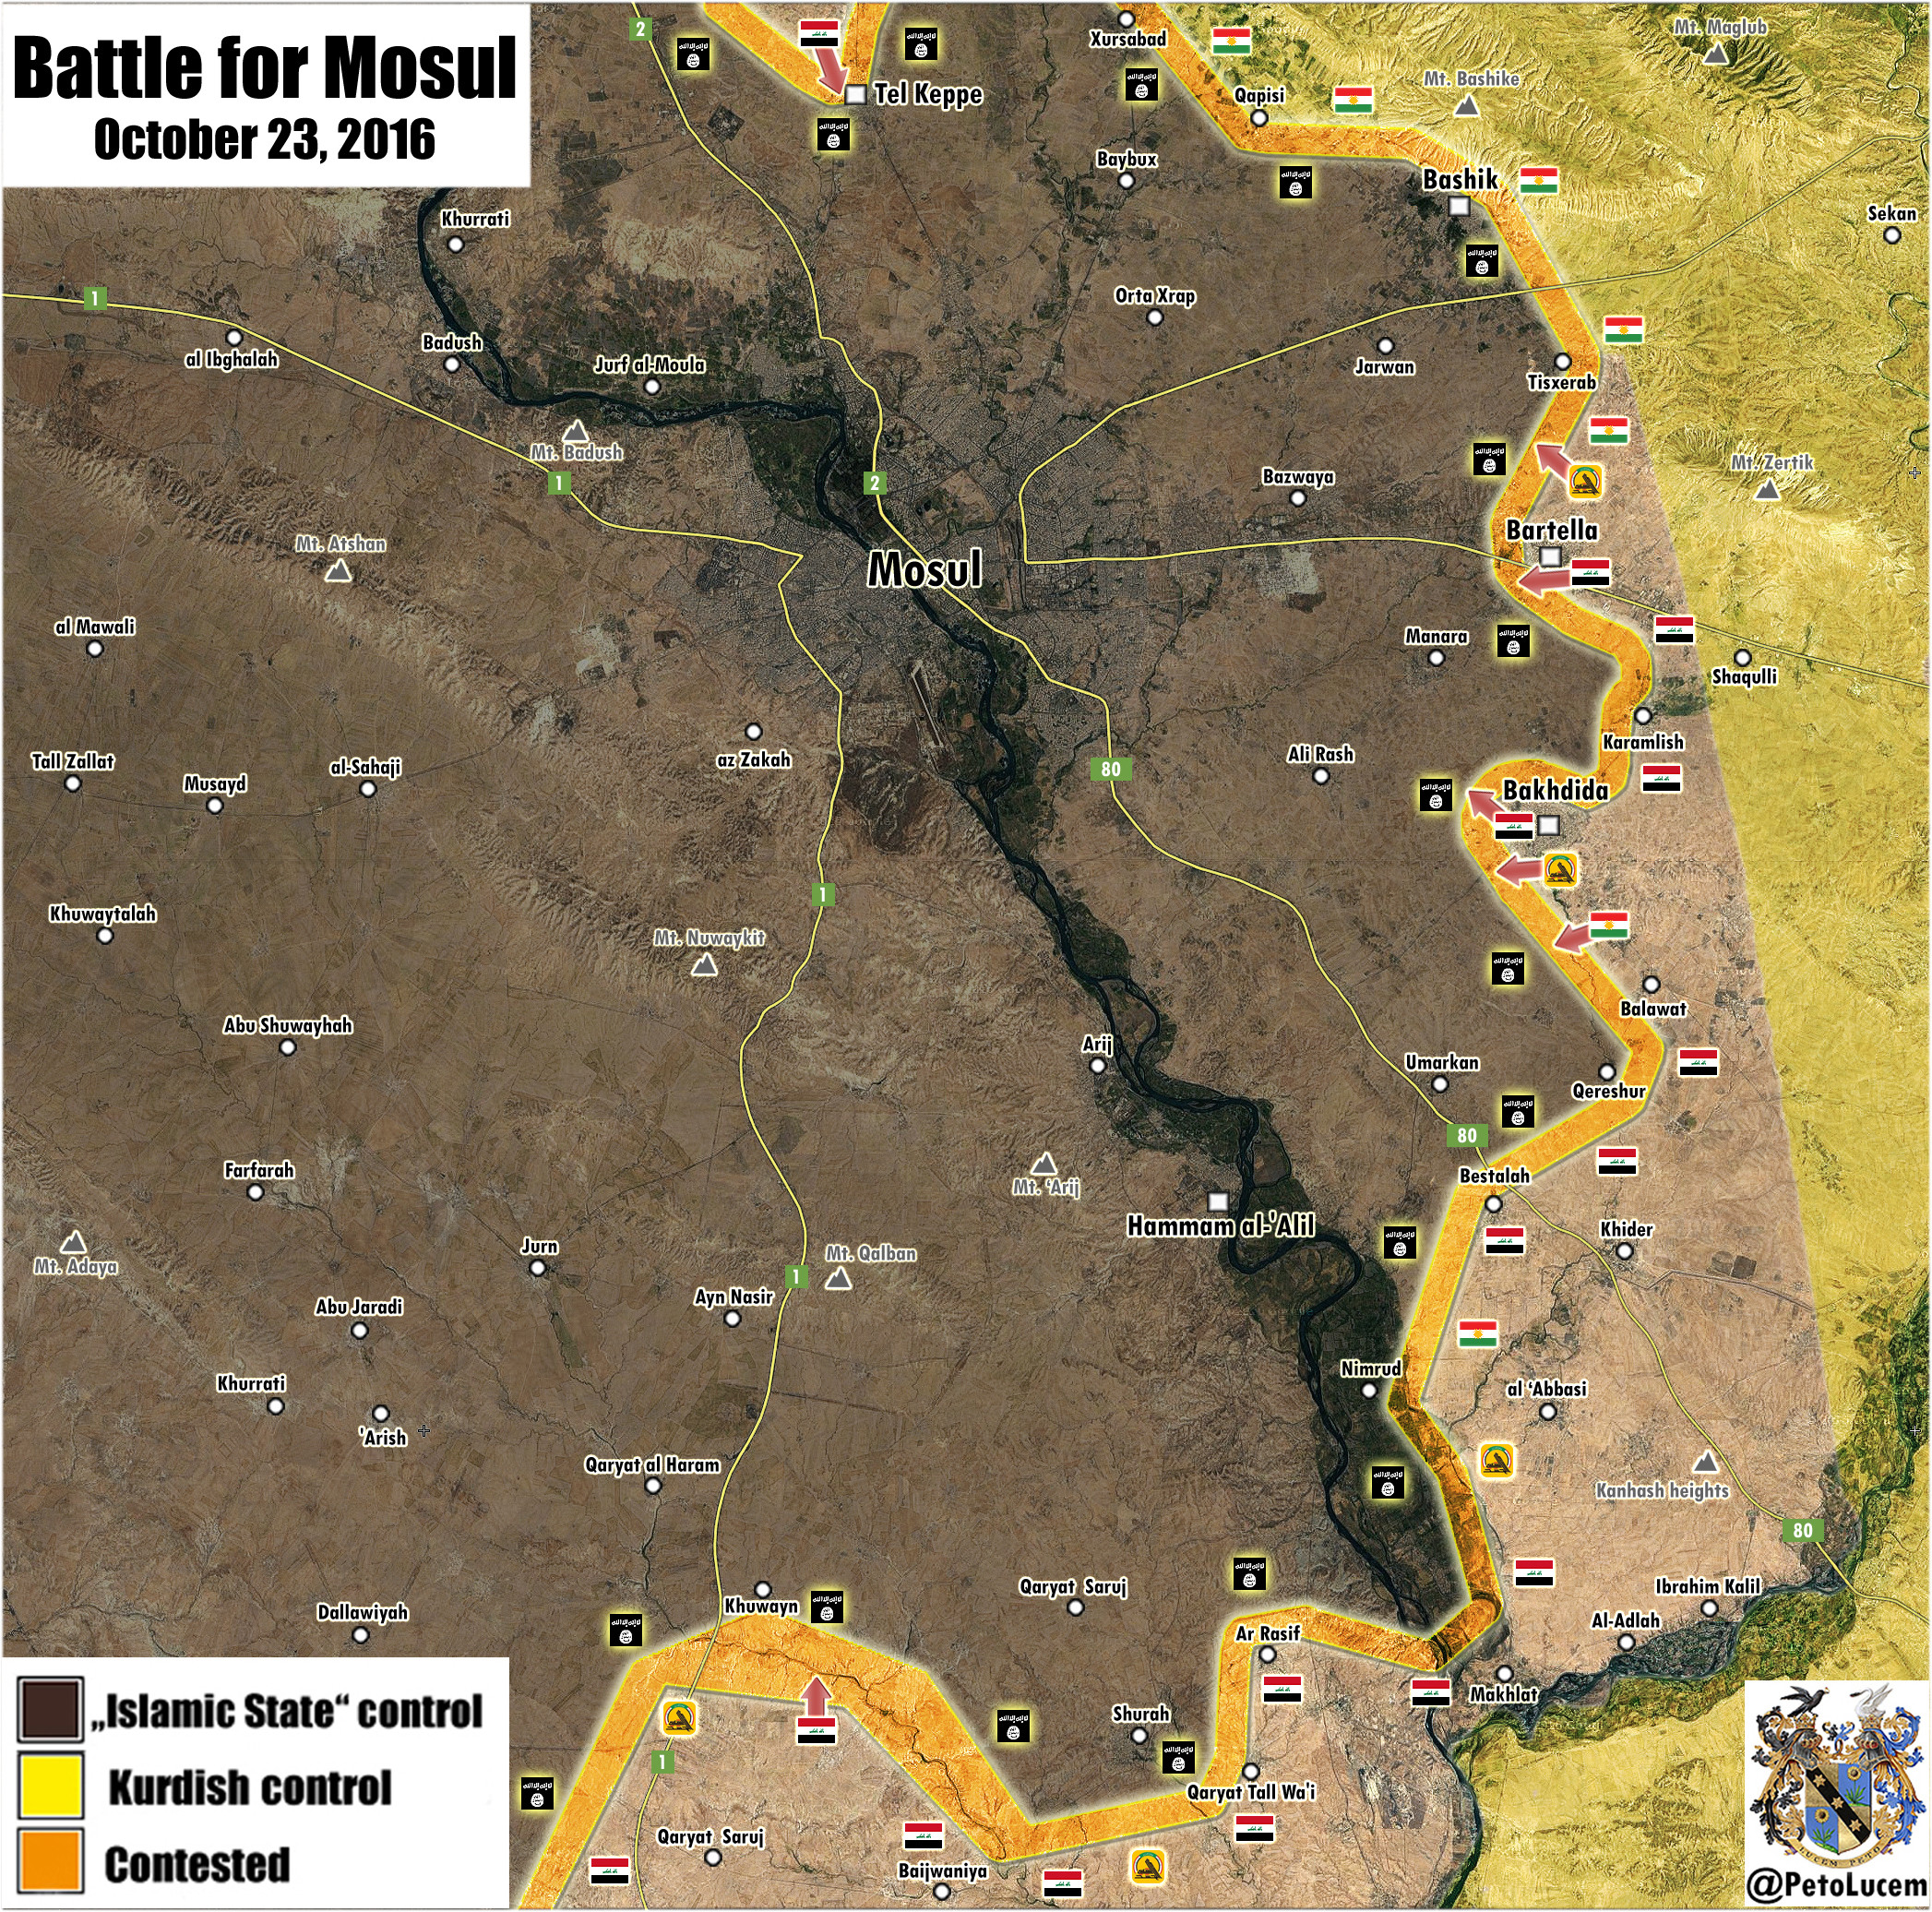 Iraqi Map Update: Results of 7th Day of Battle for Mosul